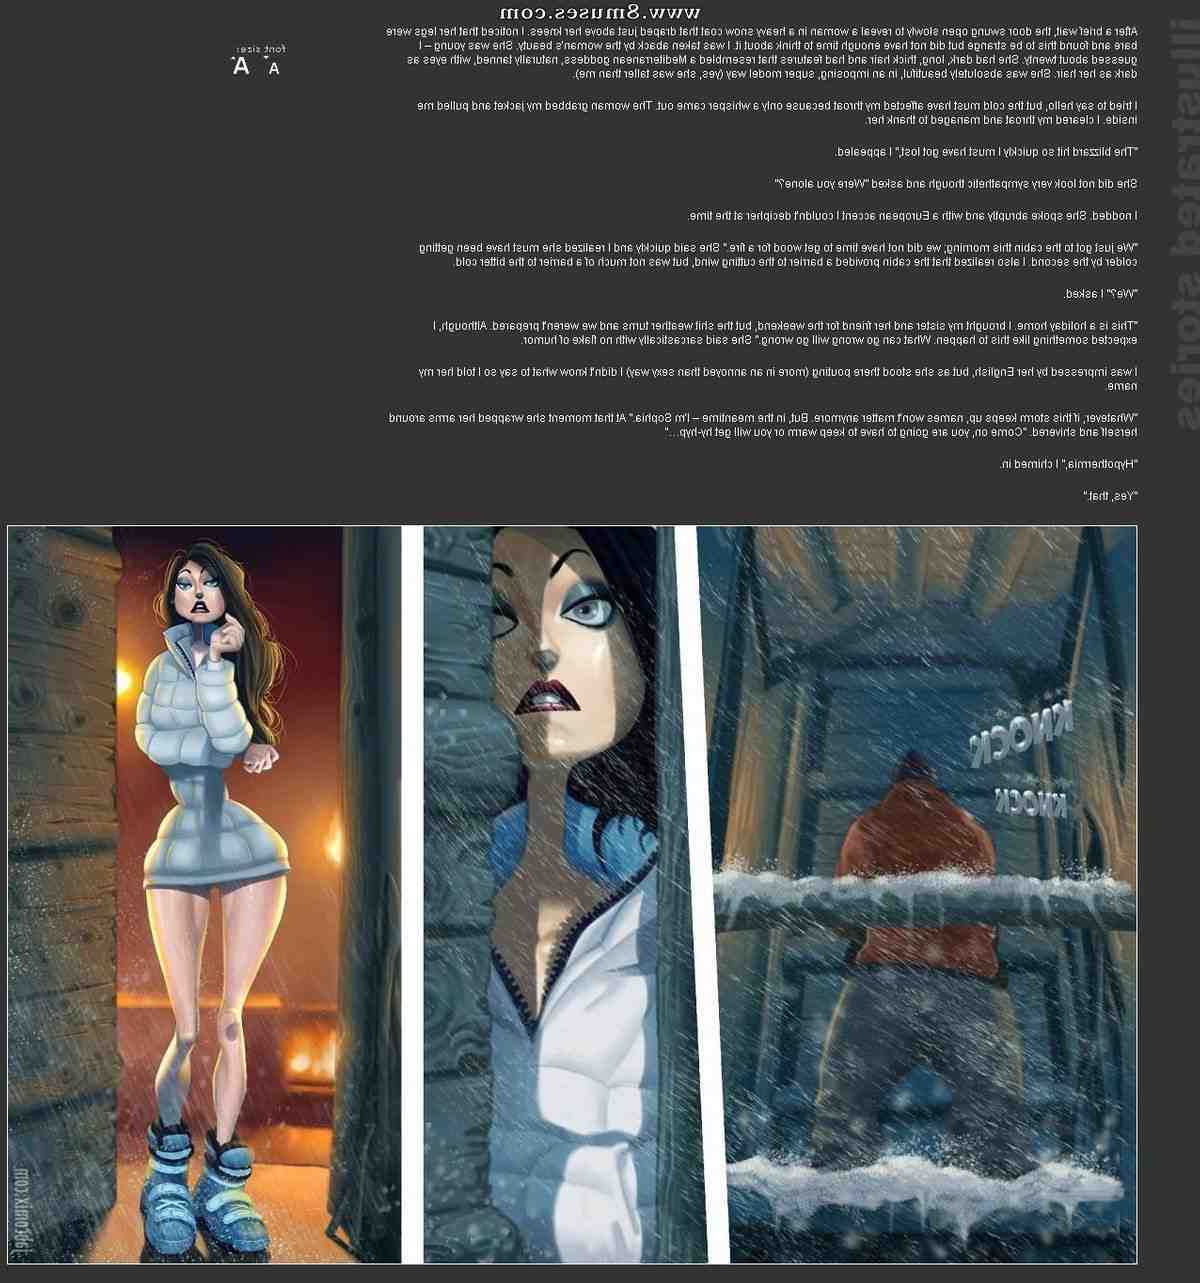 JAB-Comics/A-Blizzard-Night-of-Firsts A_Blizzard__Night_of_Firsts__8muses_-_Sex_and_Porn_Comics_3.jpg